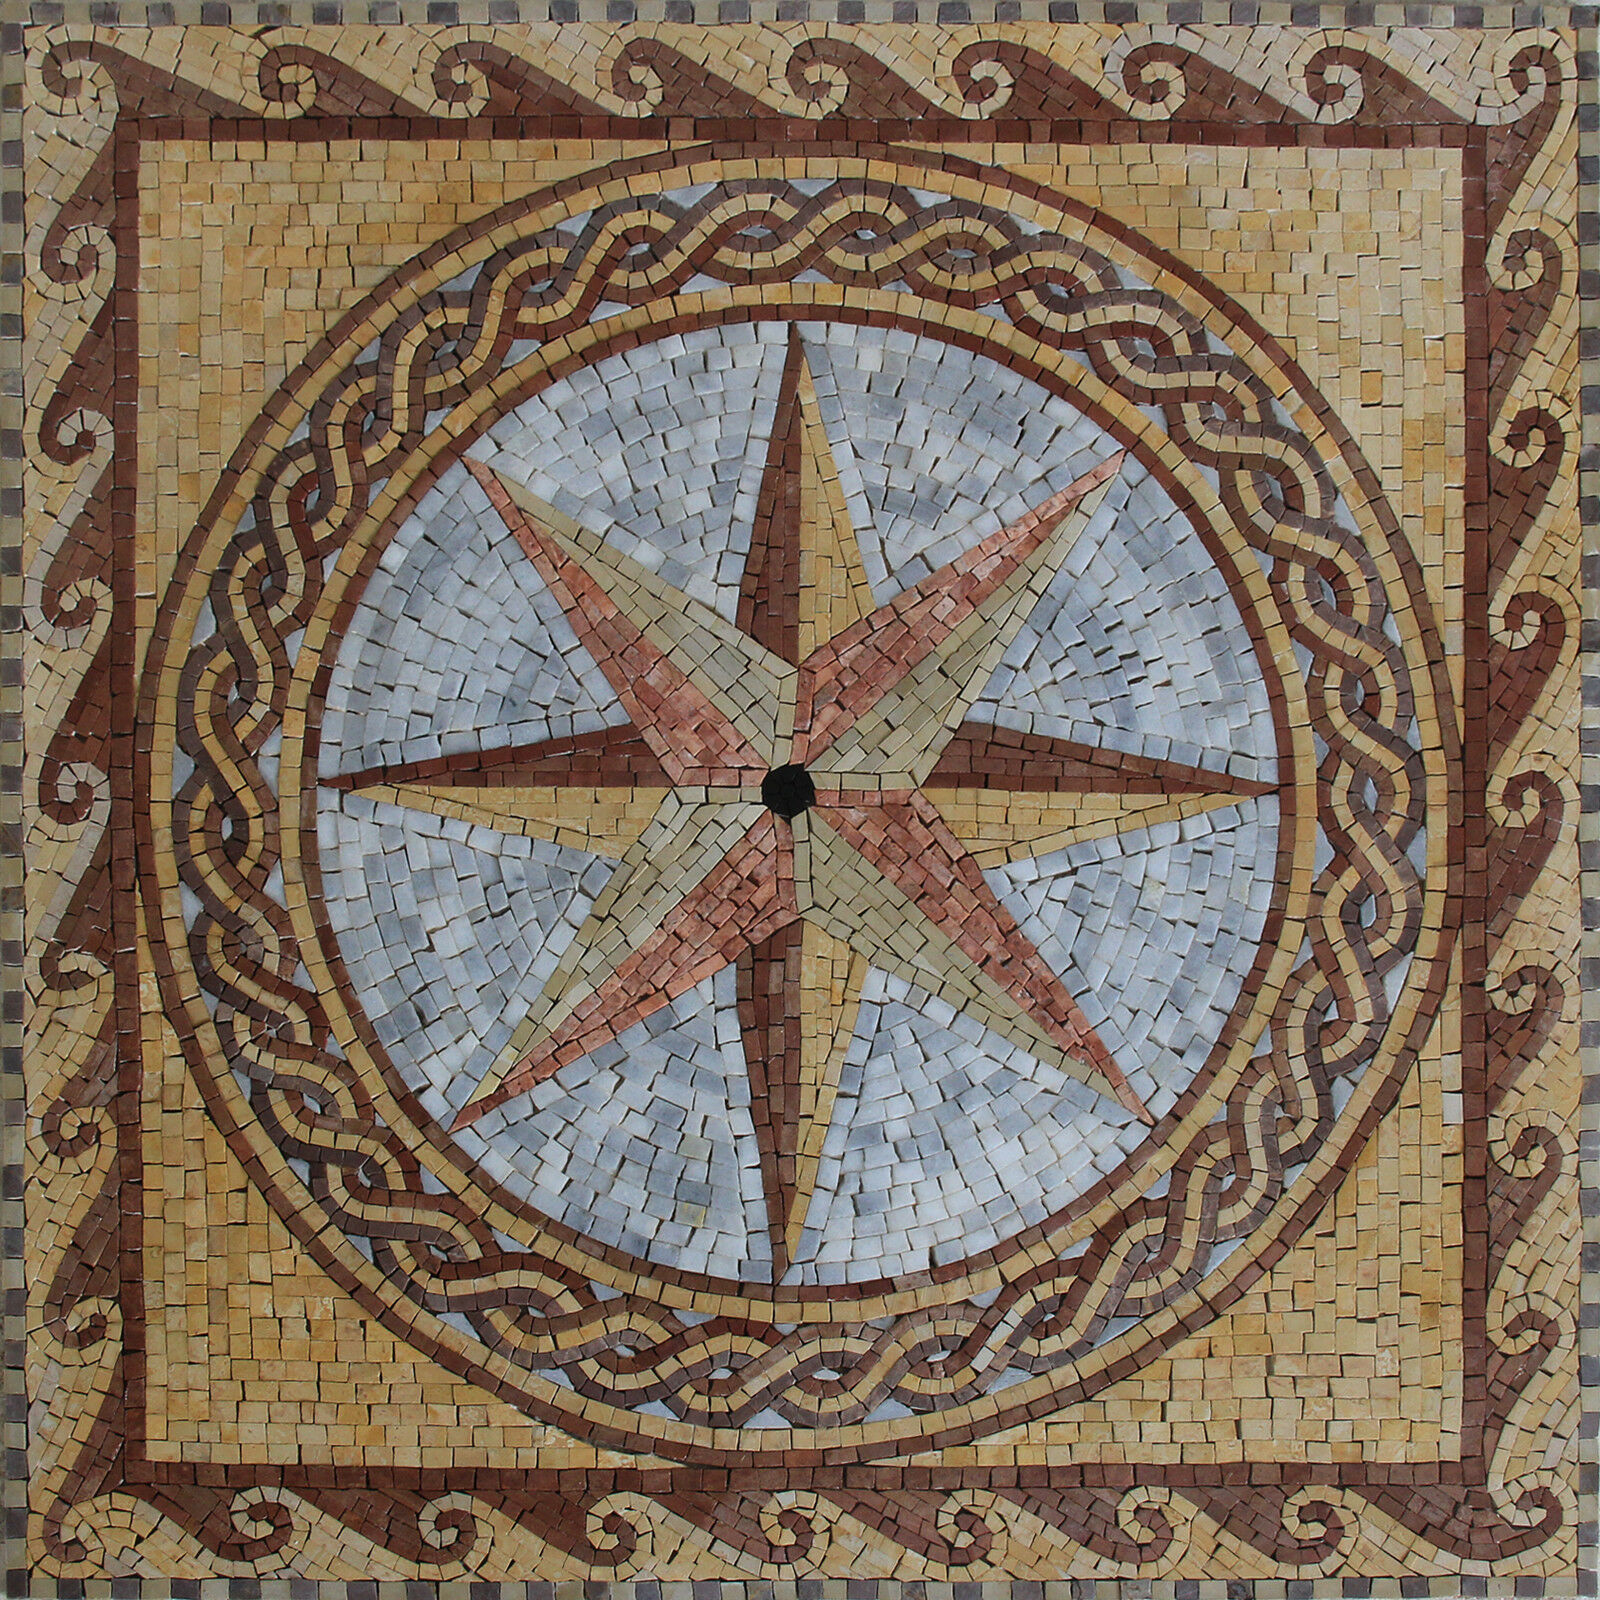 Square Compass Star Mosaic 31''X31